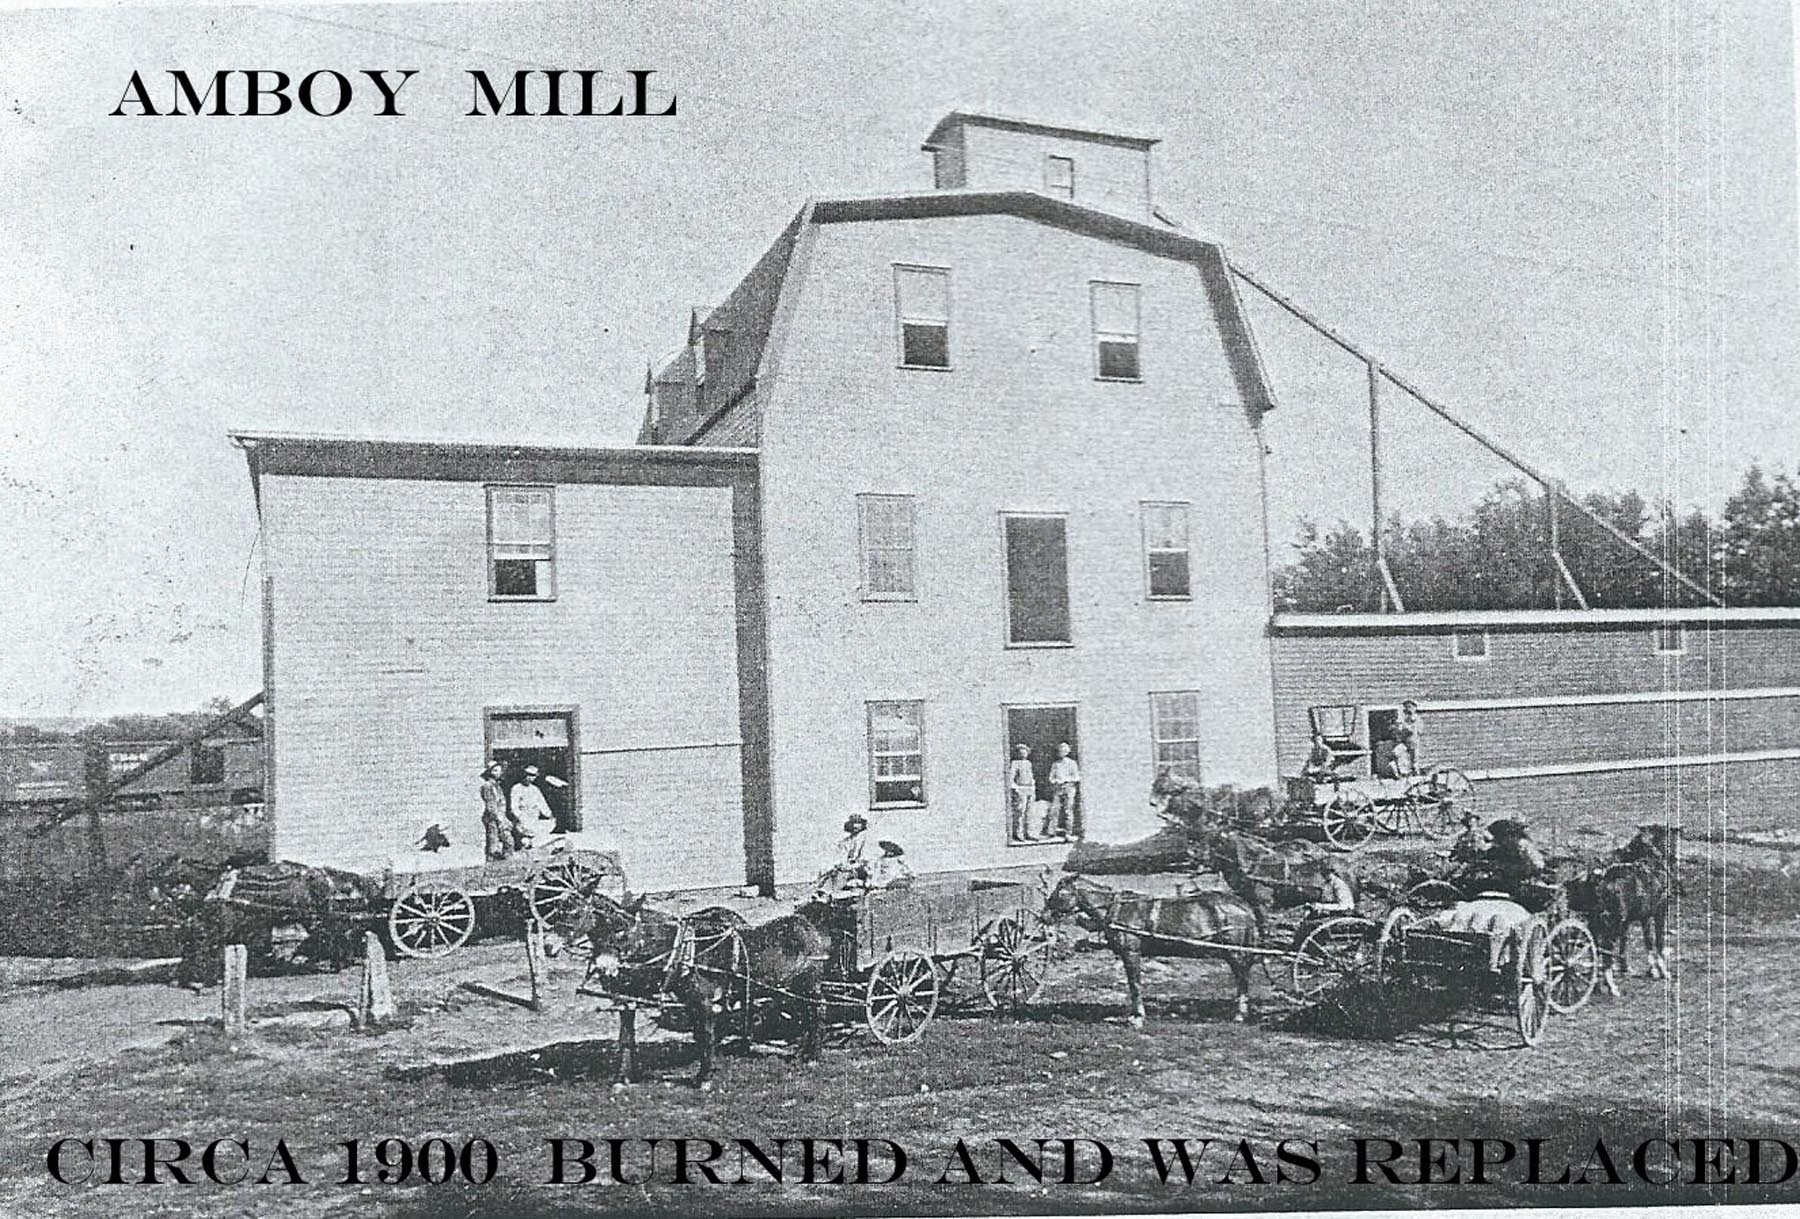 Amboy Mill - probably #2